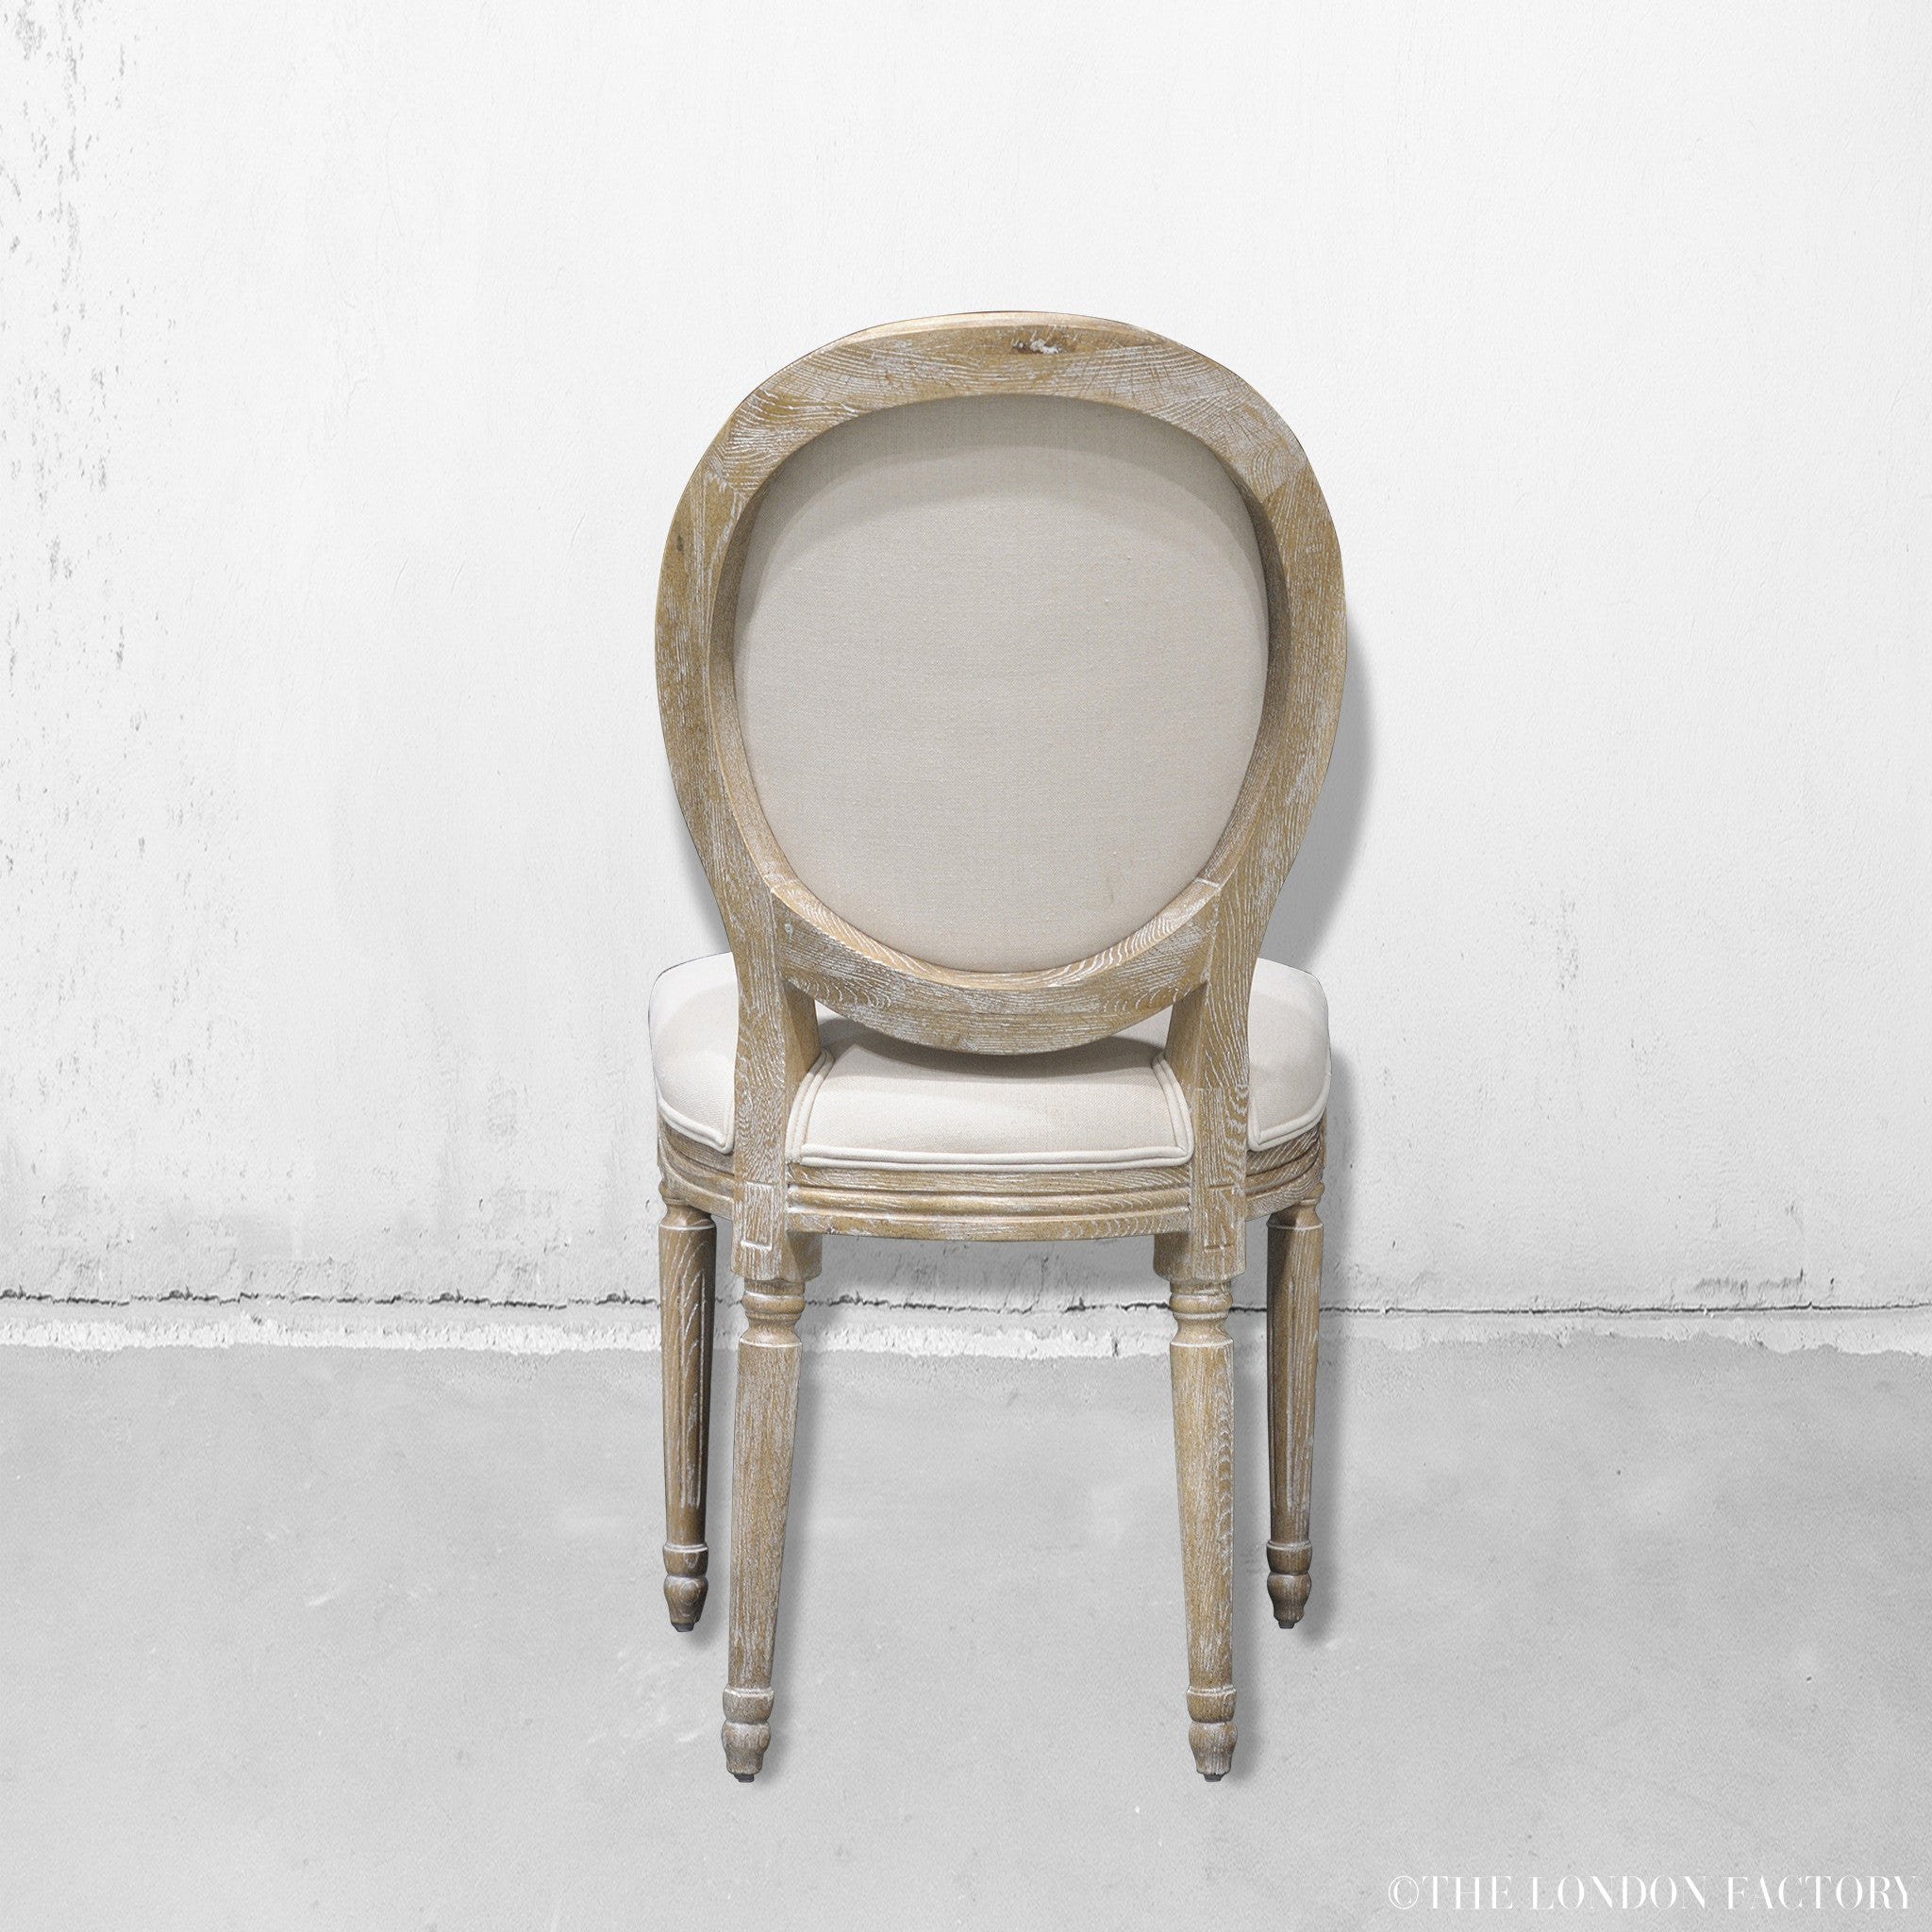 Earl French Country Upholstered Dining Chair The London